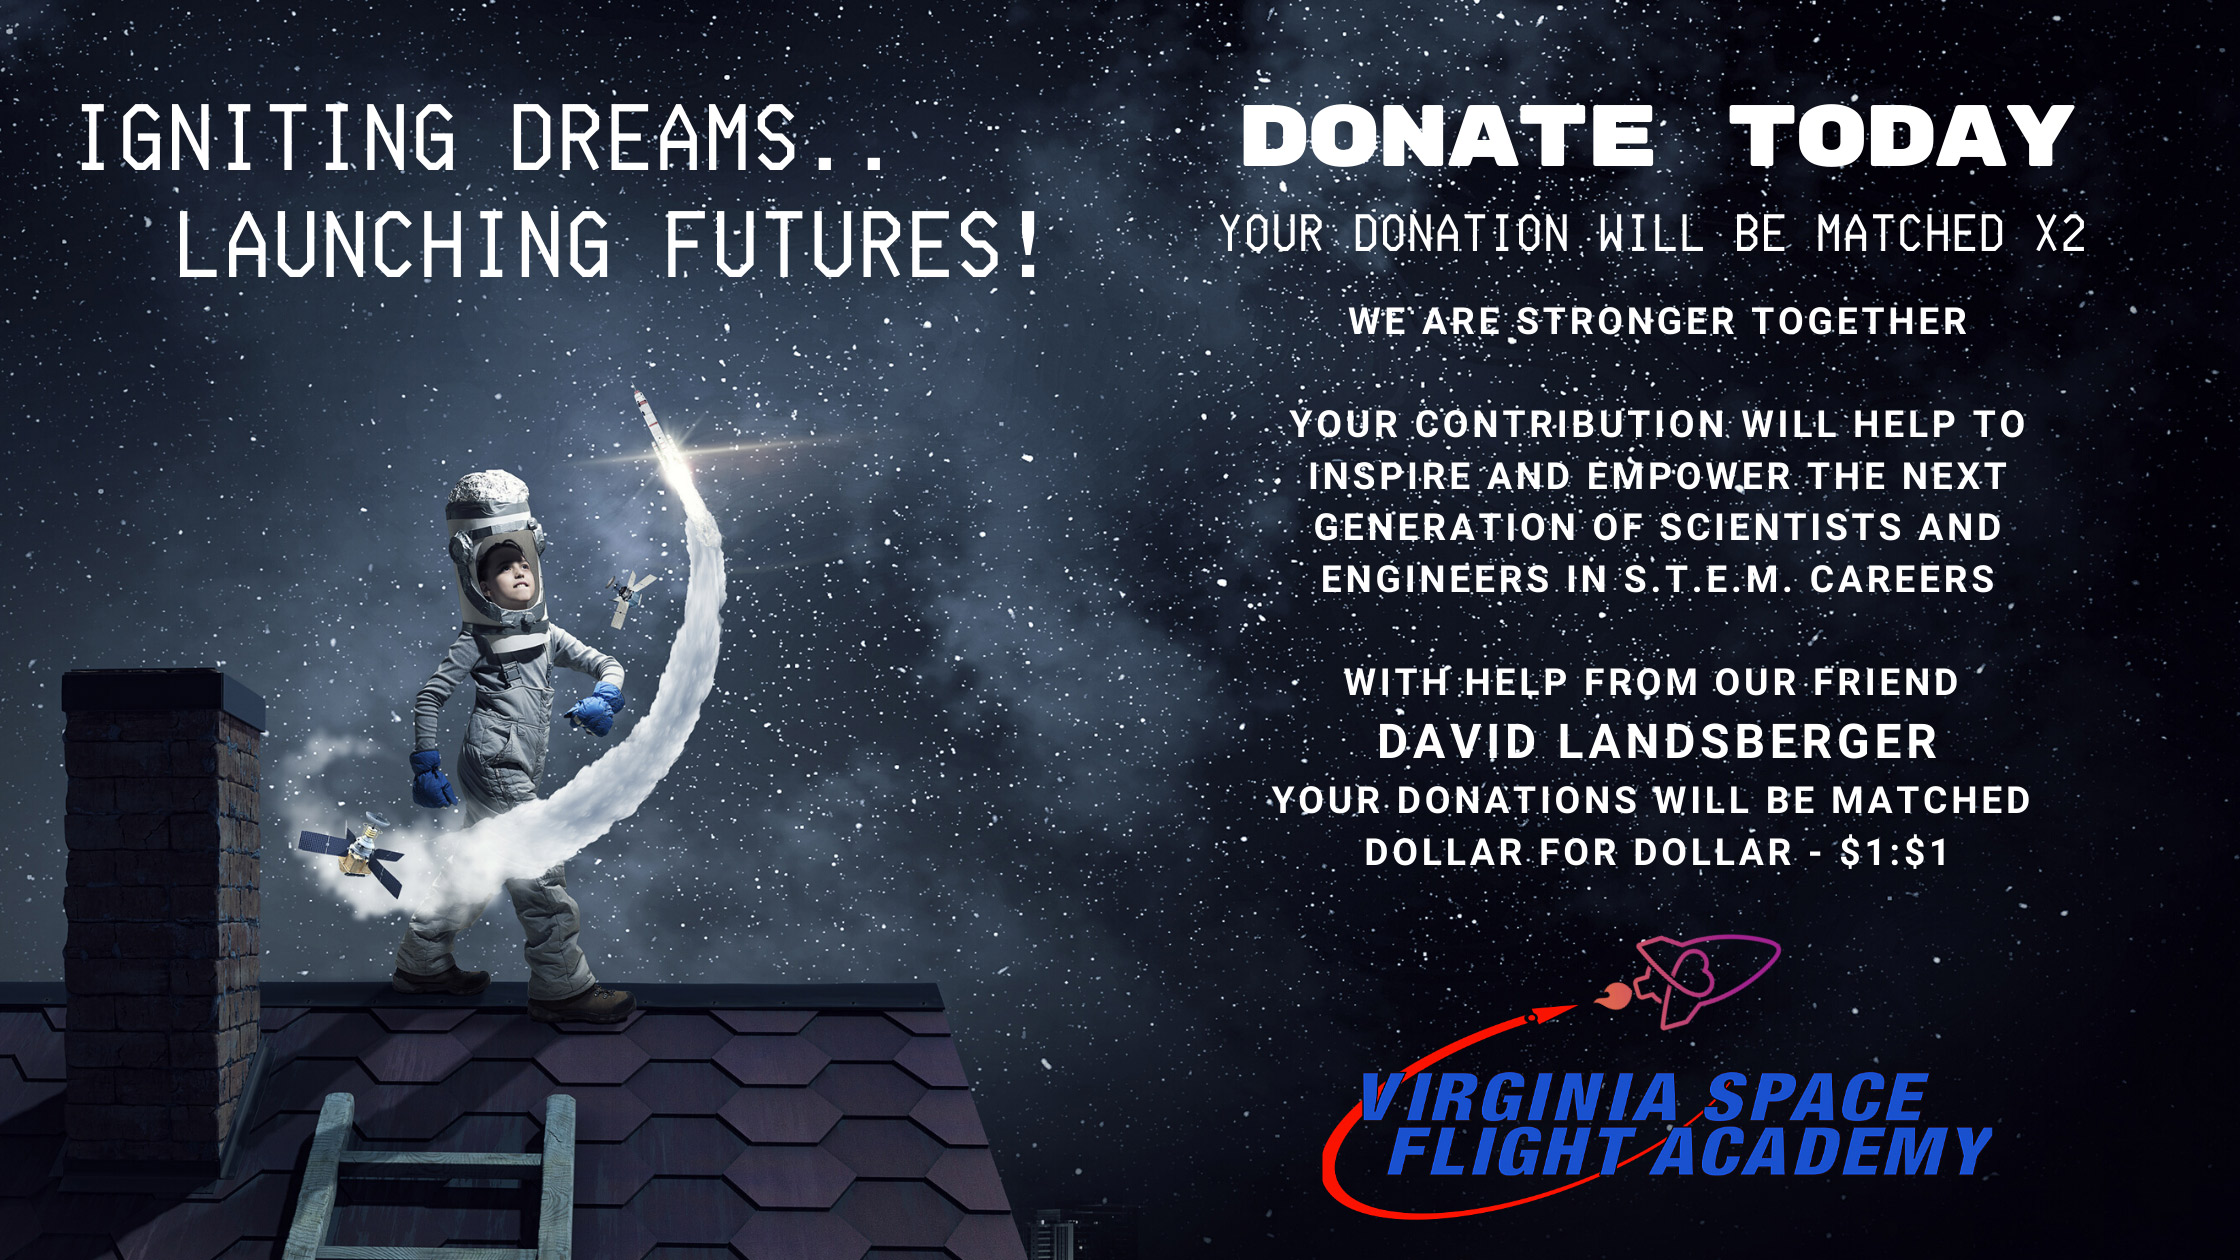 Image: Donate to VA Space Flight Academy and Your Donation is Doubled